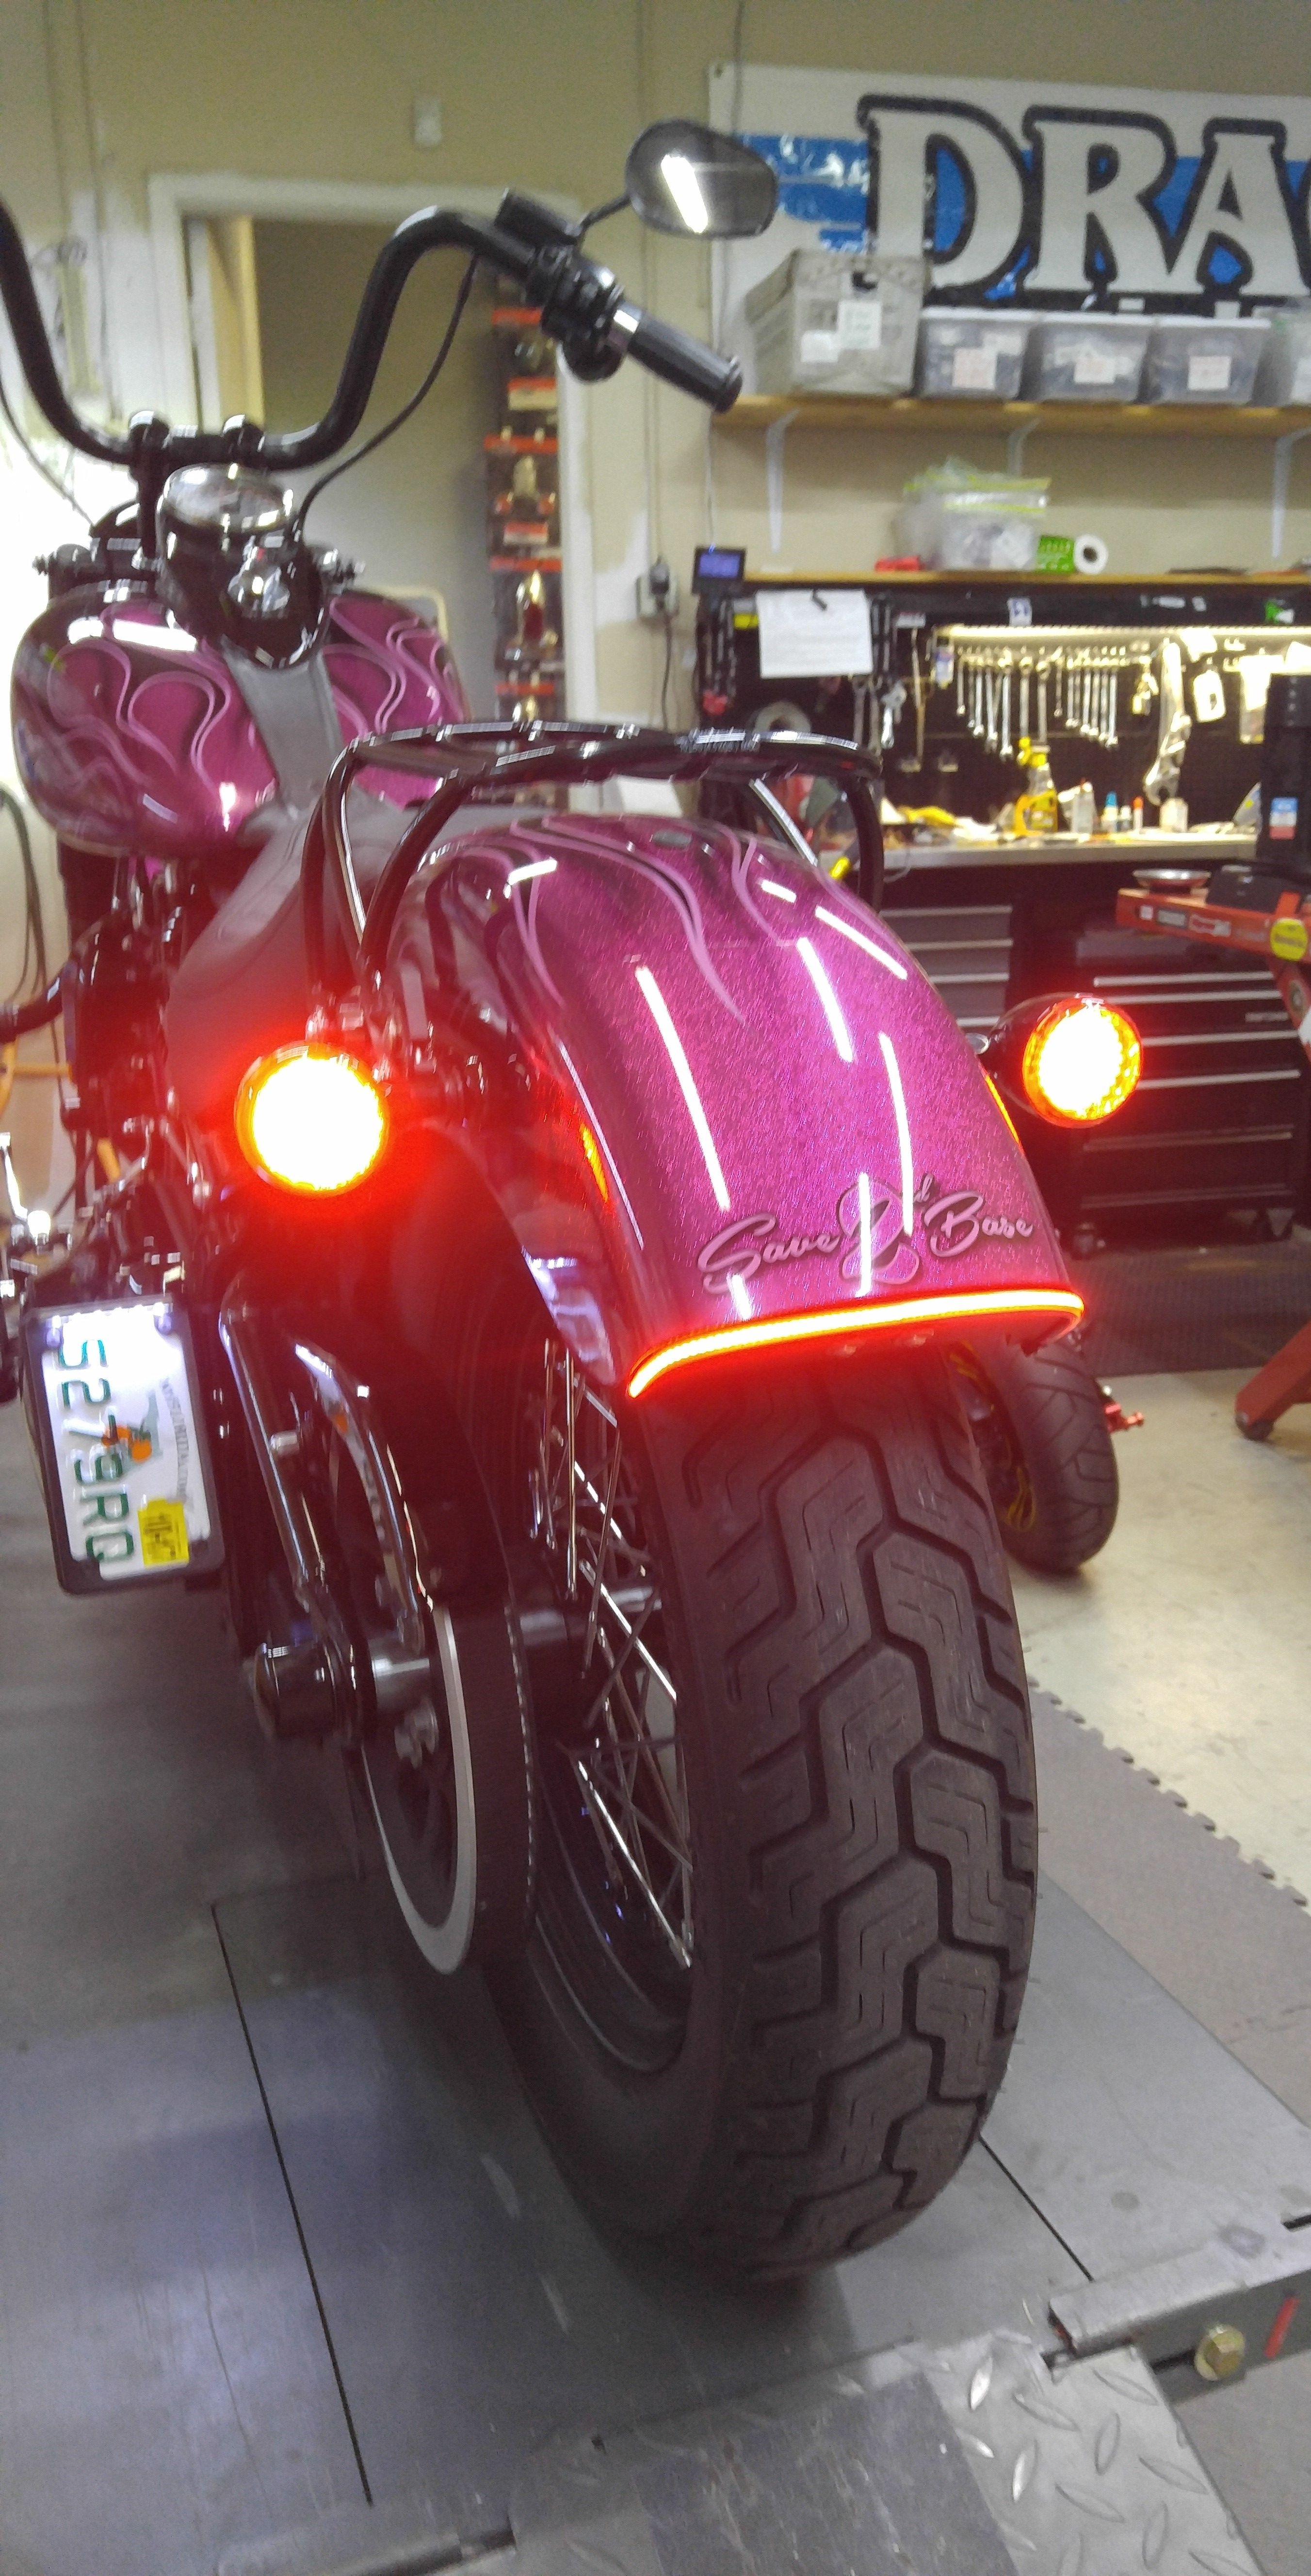 Rear Led Upgrade 2016 Softail Slim Installed A Pair Of Red 1157 Bullet Style Led Turn Signal Clusters Al Motorcycle Lights Custom Bikes Cafe Racers Motorcycle